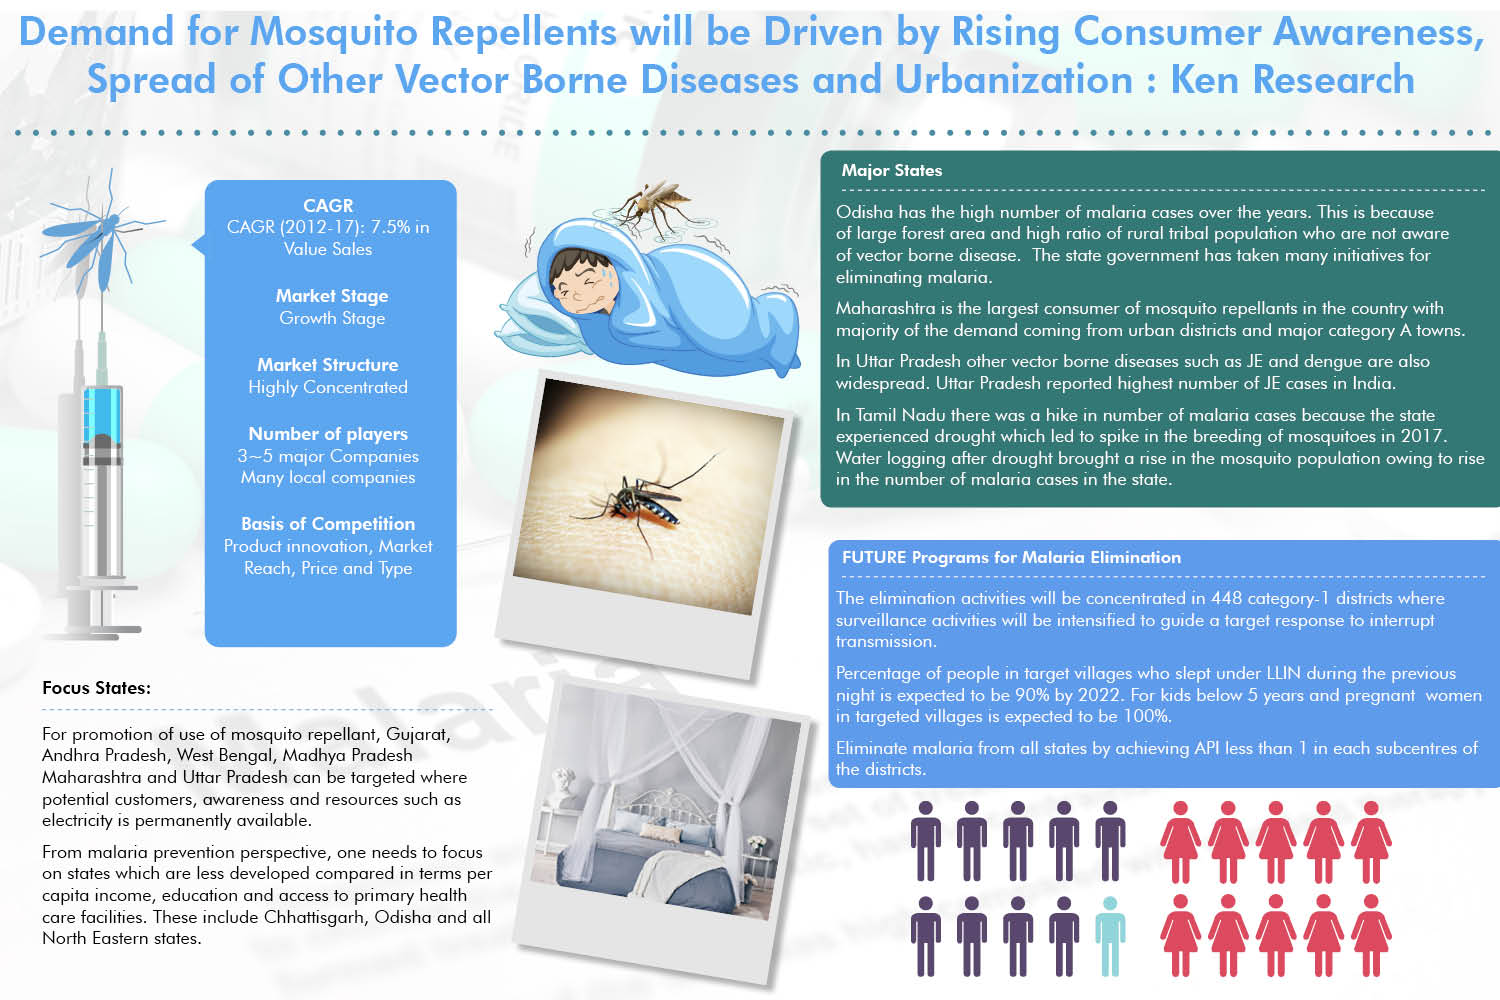 Structural Changes in Malaria